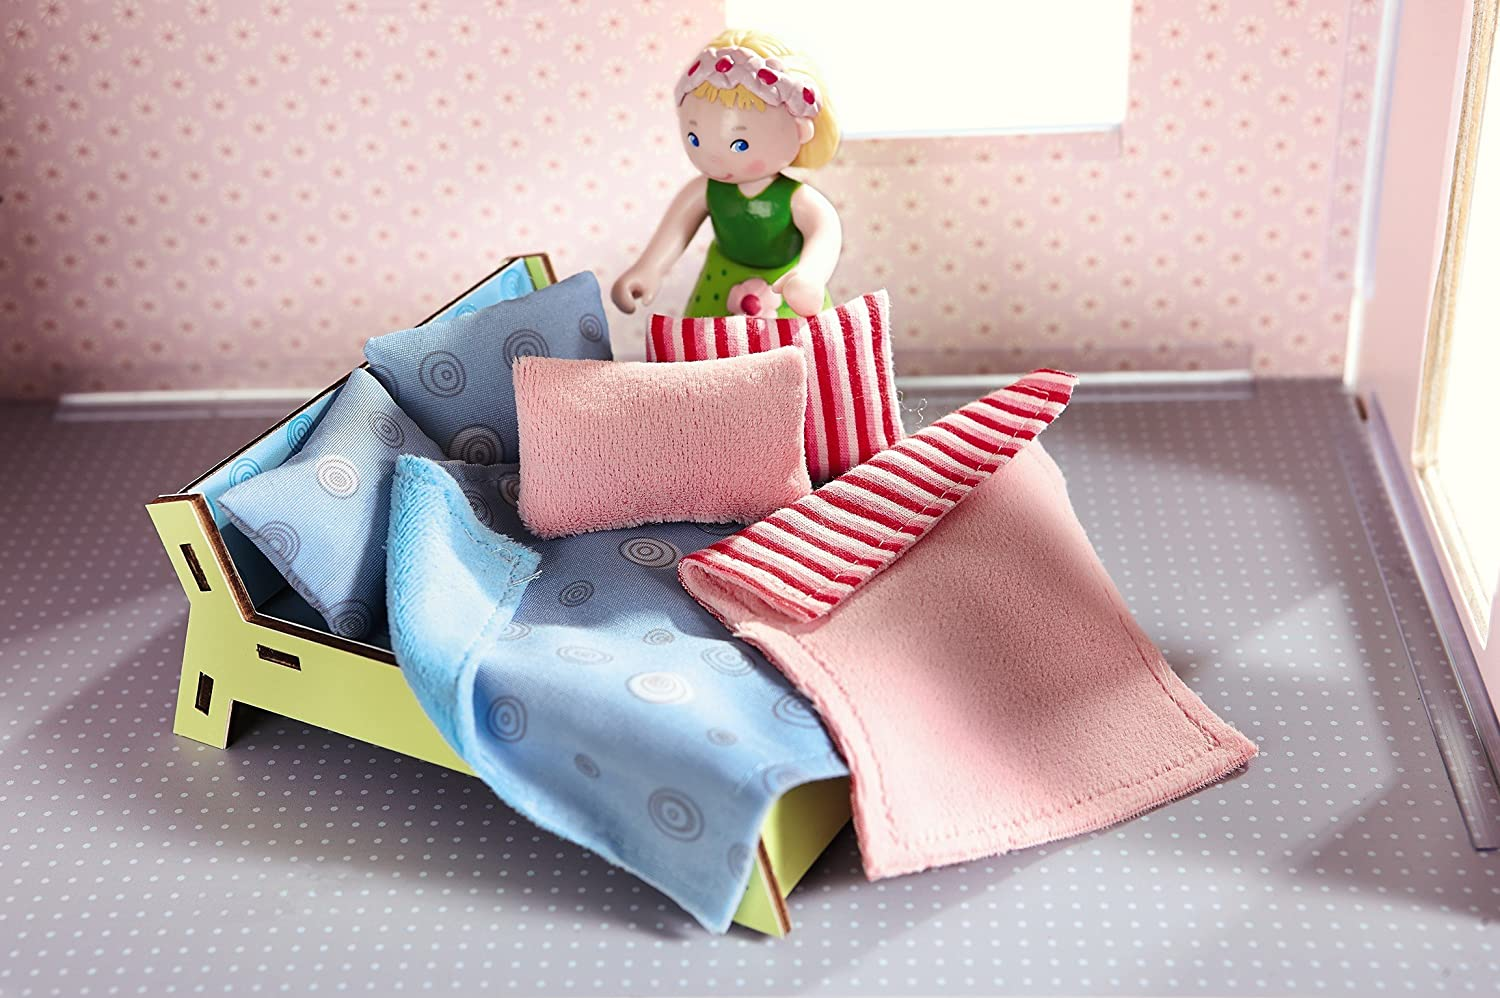 HABA Little Friends Pillows /& Blankets Dollhouse Accessory for 4 Bendy Doll Figures